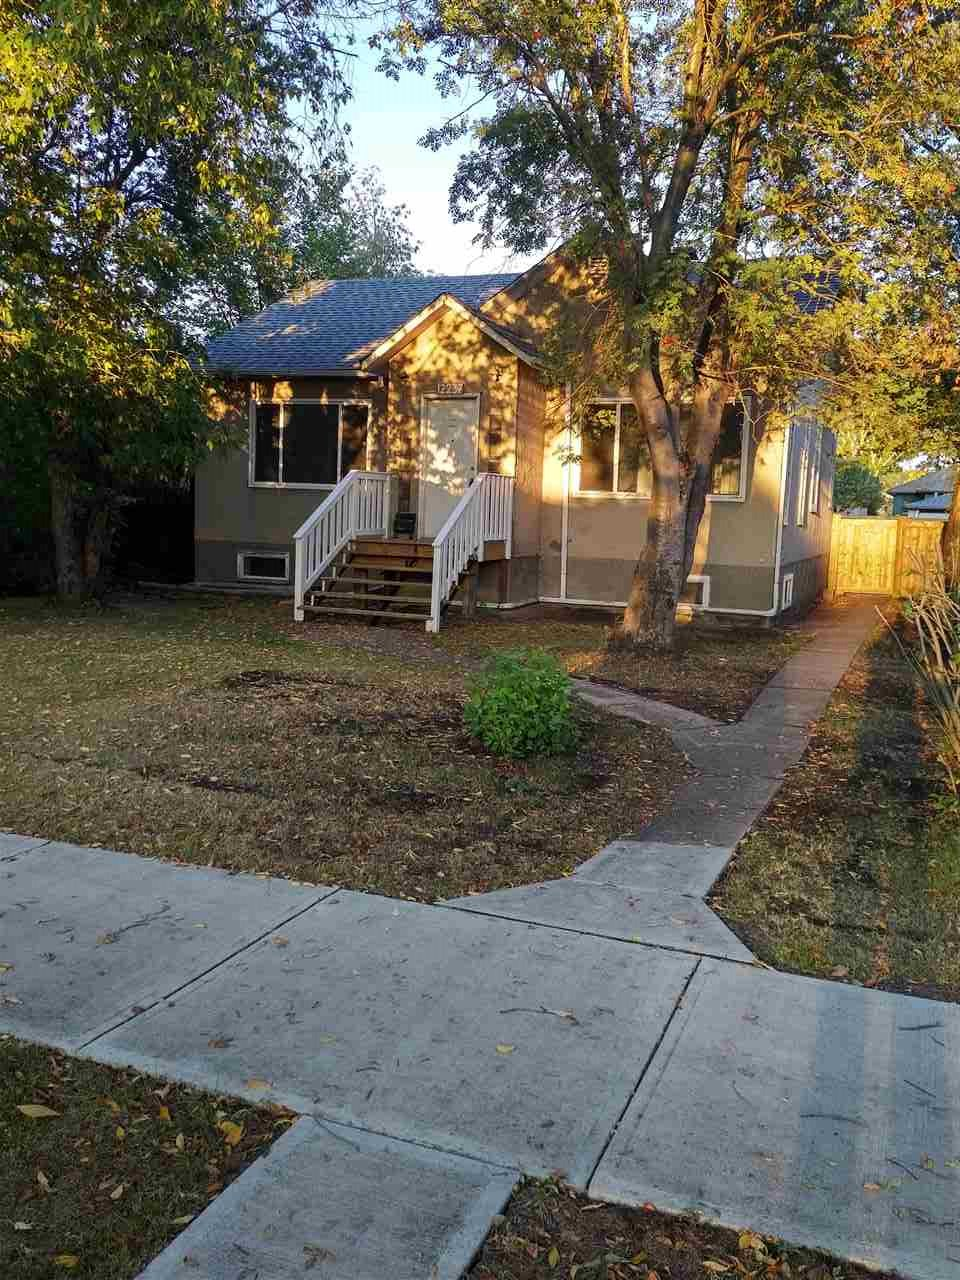 Great opportunity for a family, Investor or Builder. Solid 3 bedroom bungalow  sitting on a large 50' by 150' (RF3) Duplex lot just north of NAIT. This home received a number of upgrades in 2005; new furnace, HWT, electrical panel plus a number of windows. The owners also installed  sump pump at that time. New shingles were put on the home 4 years ago. Just recently new steps, back deck, fence and garage shingles were all done. New laminate in the LR and paint throughout. The main floor has a large living room, dining room, kitchen, 2 bedrooms plus full bath. The basement has a large family room, bedroom, 2nd kitchen plus 3 piece bath. Laundry and utility room complete the basement. The large yard can be enjoyed by your family or a duplex could be built in the future! Lots of parking, great location and future potential.